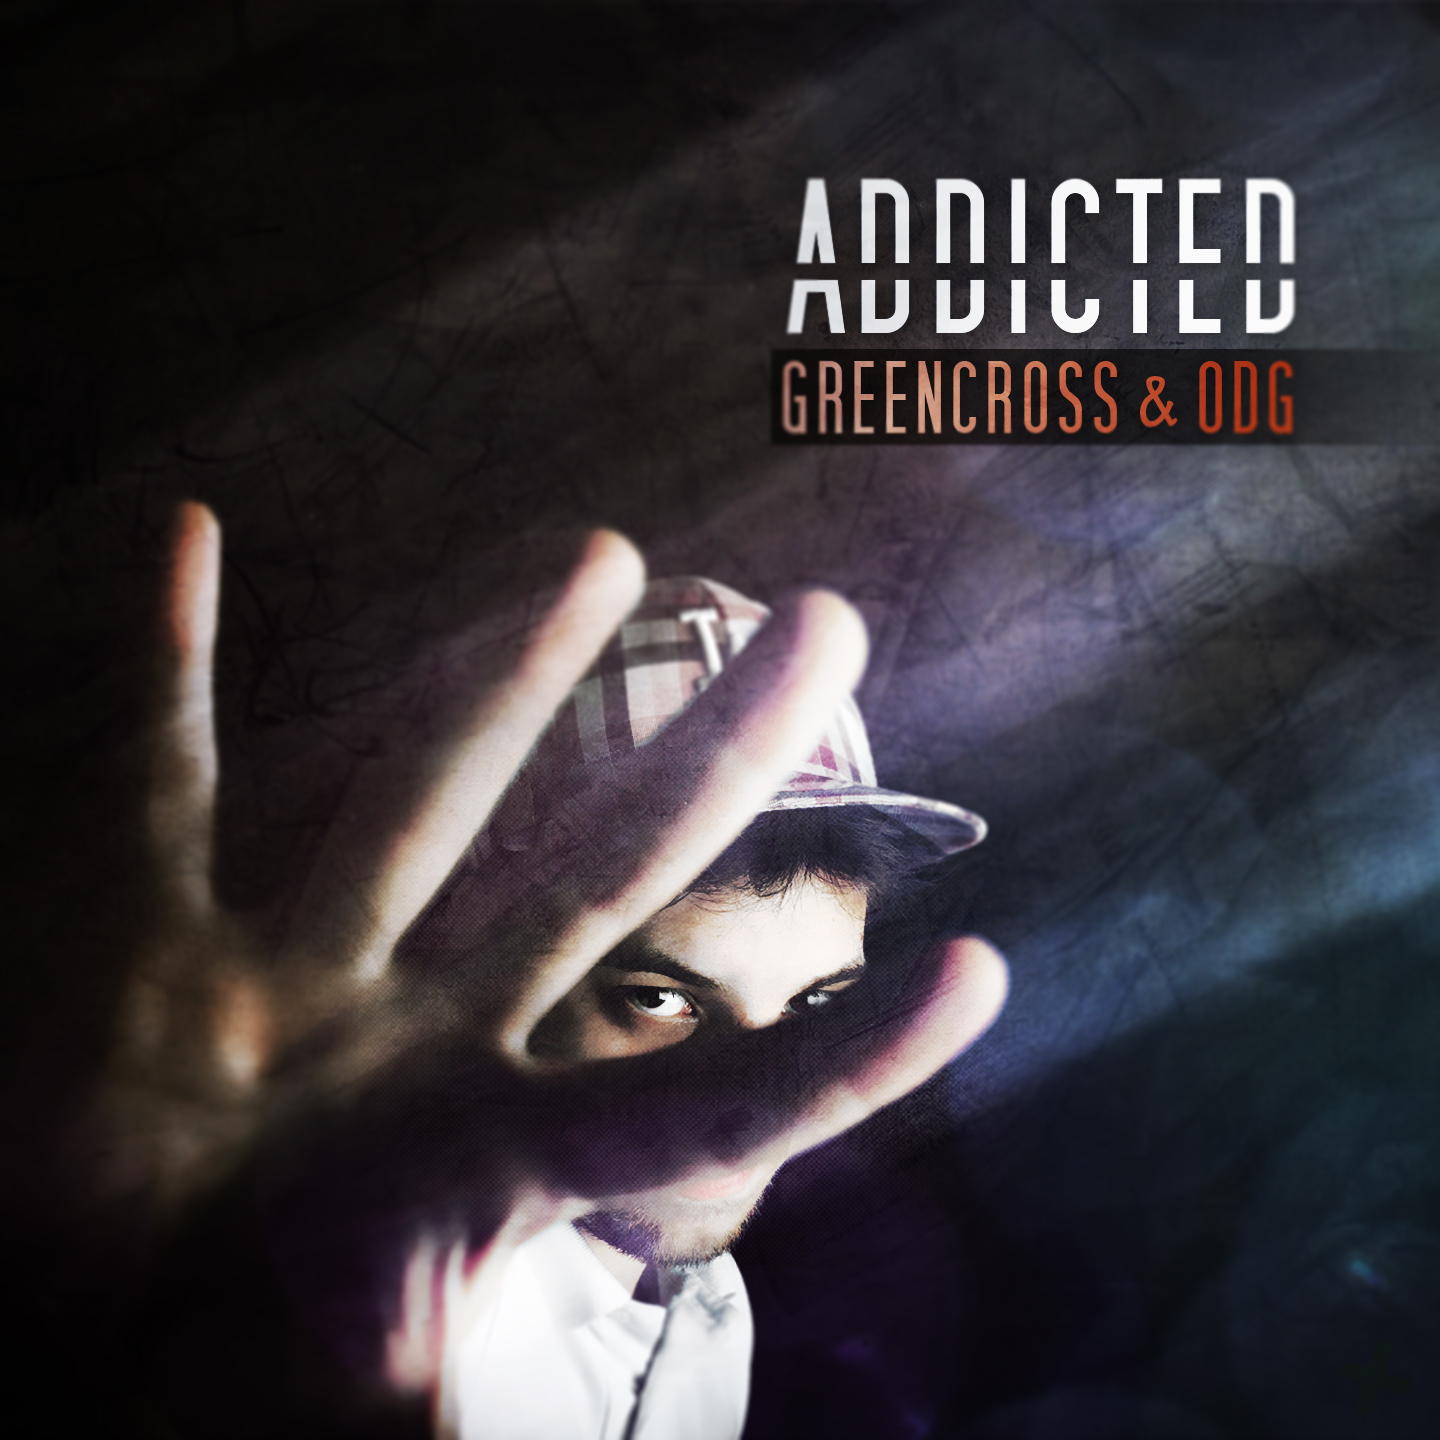 Greencross & ODG - Addicted - Cover - 1440x